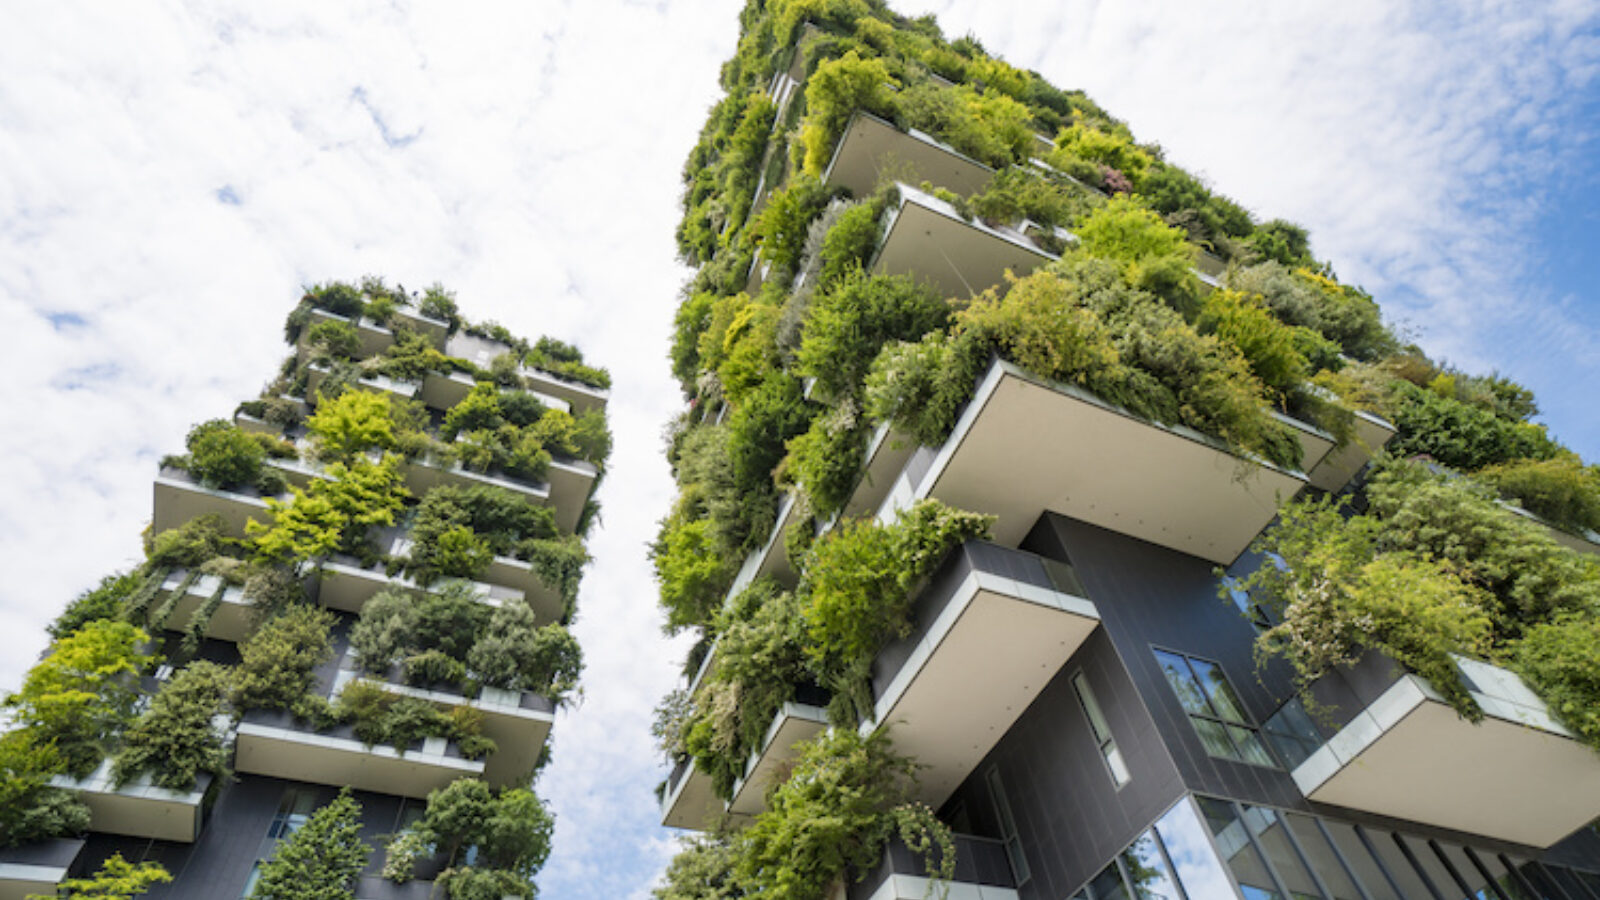 Has your company prepared for project delivery that improves nature?